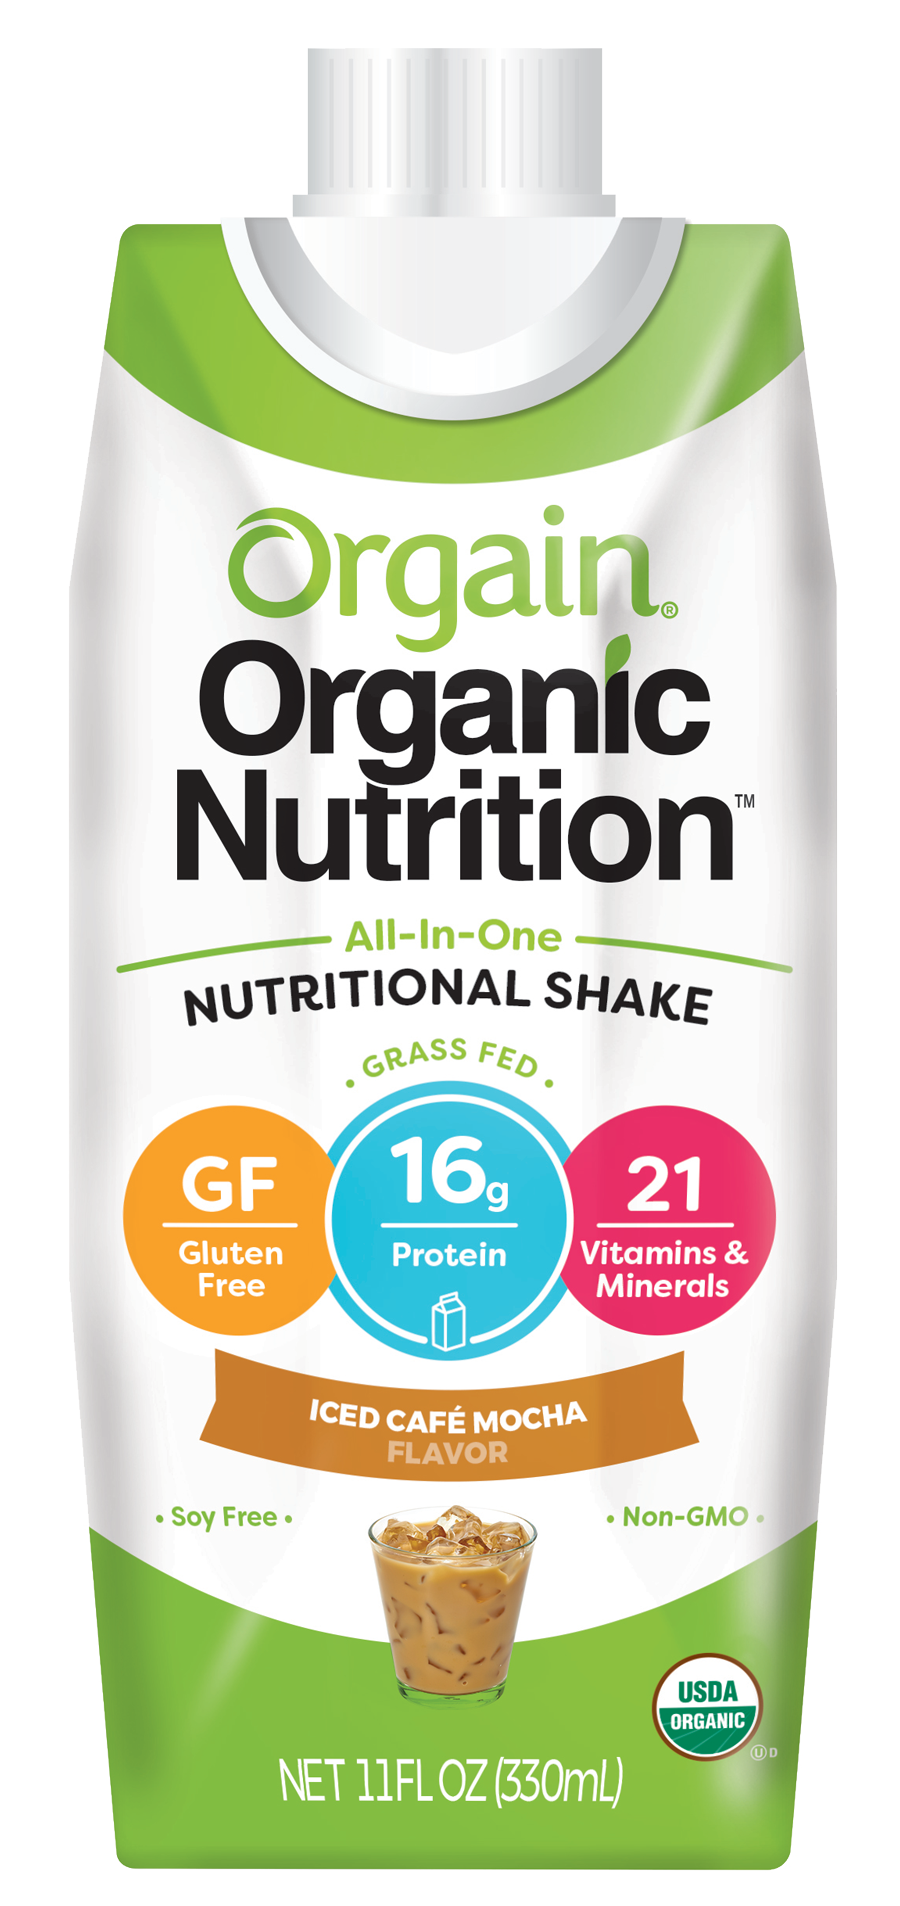 Healthy Office Drinks, Orgain Nutritional Shake - Iced Cafe Mocha